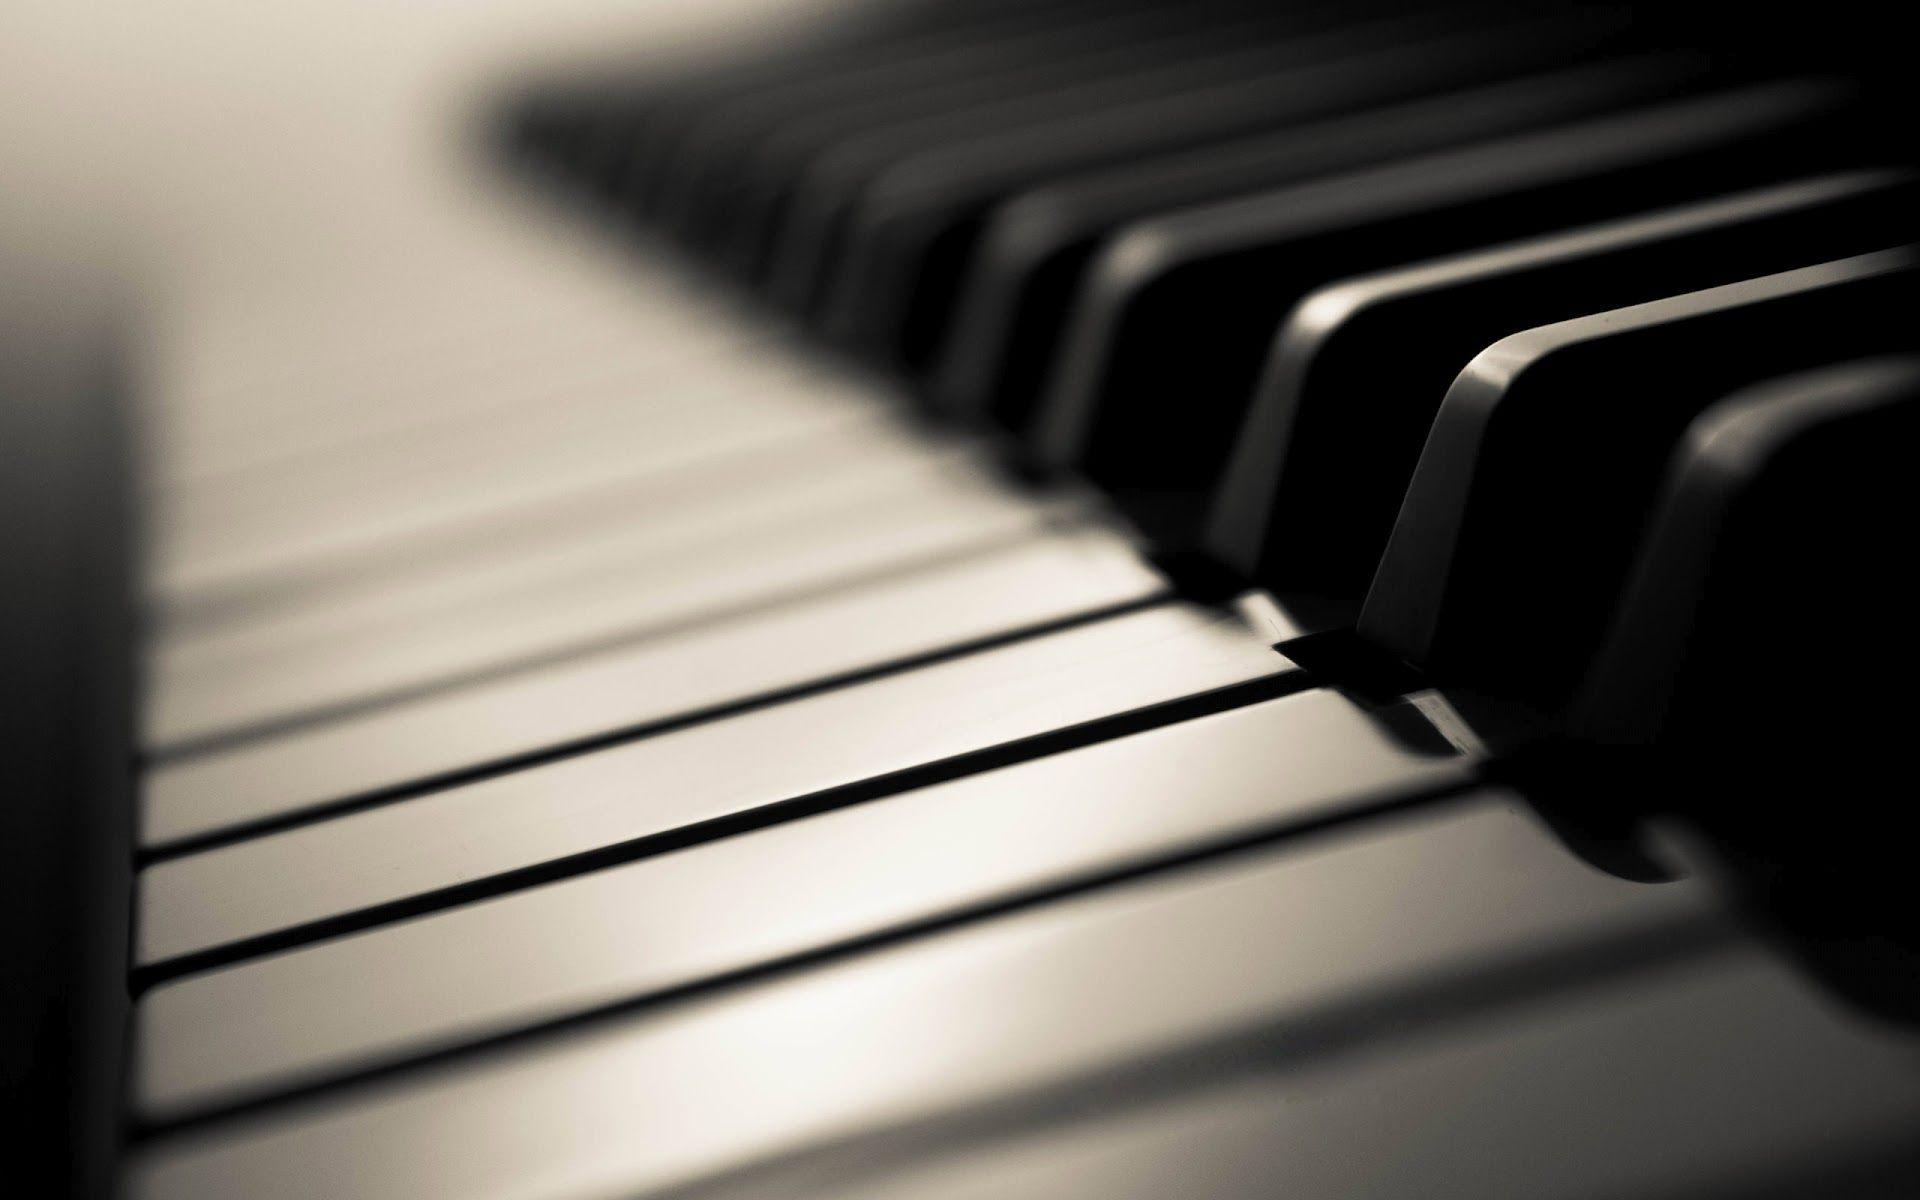 piano wallpaper ndash free - photo #7